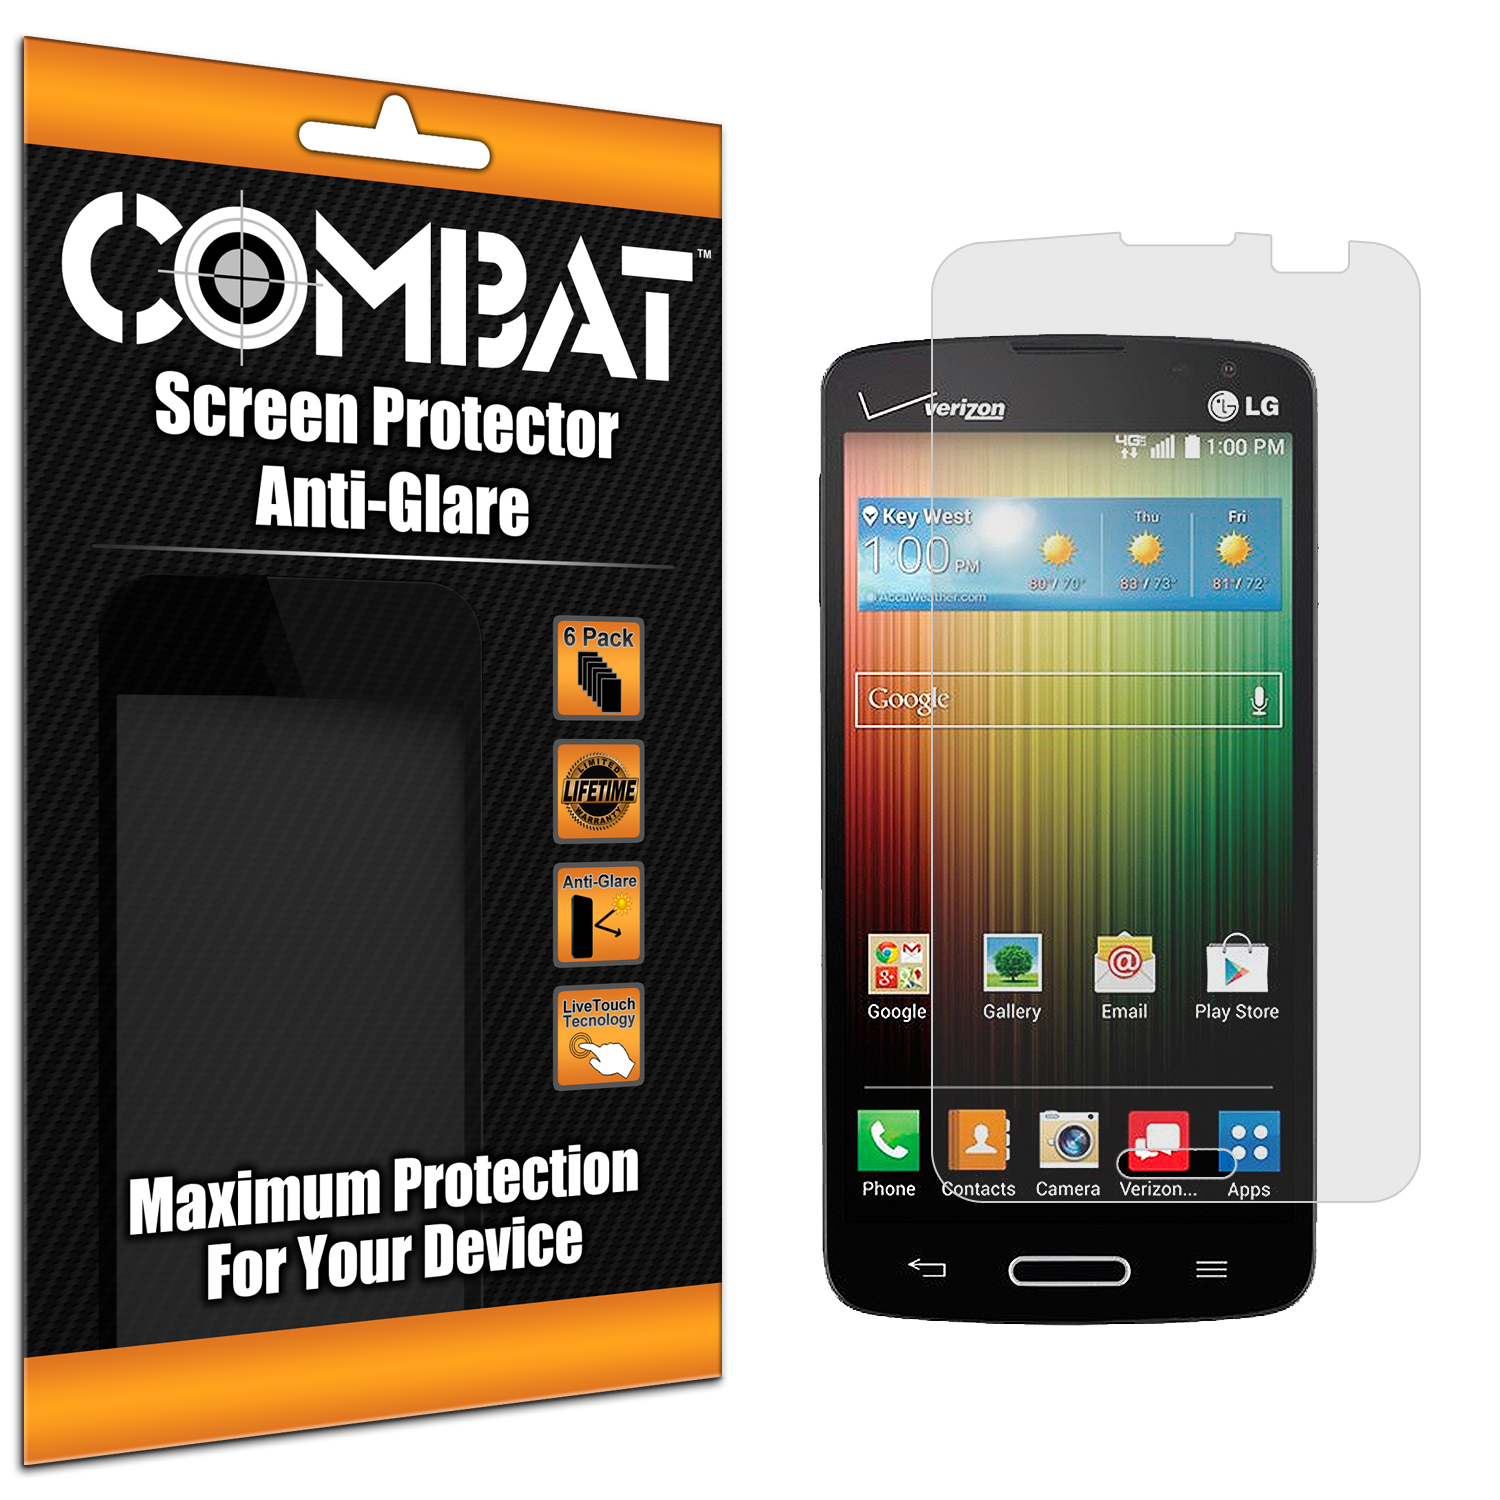 LG Lucid 3 Combat 6 Pack Anti-Glare Matte Screen Protector